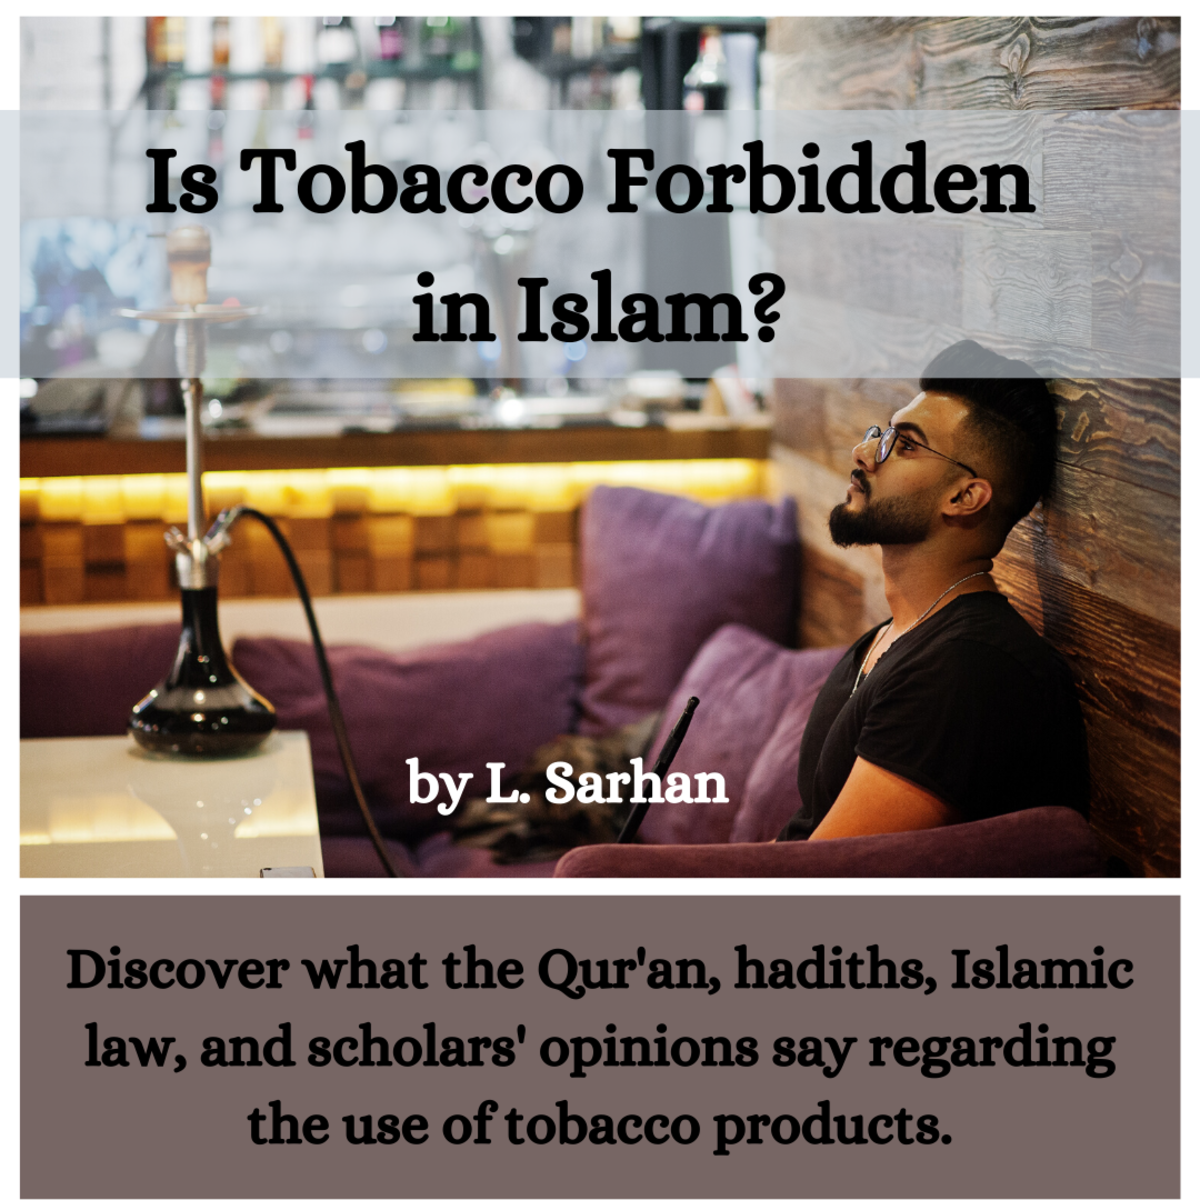 Discover what the Qur'an, hadiths, Islamic law, and scholars' opinions say regarding the use of tobacco products.